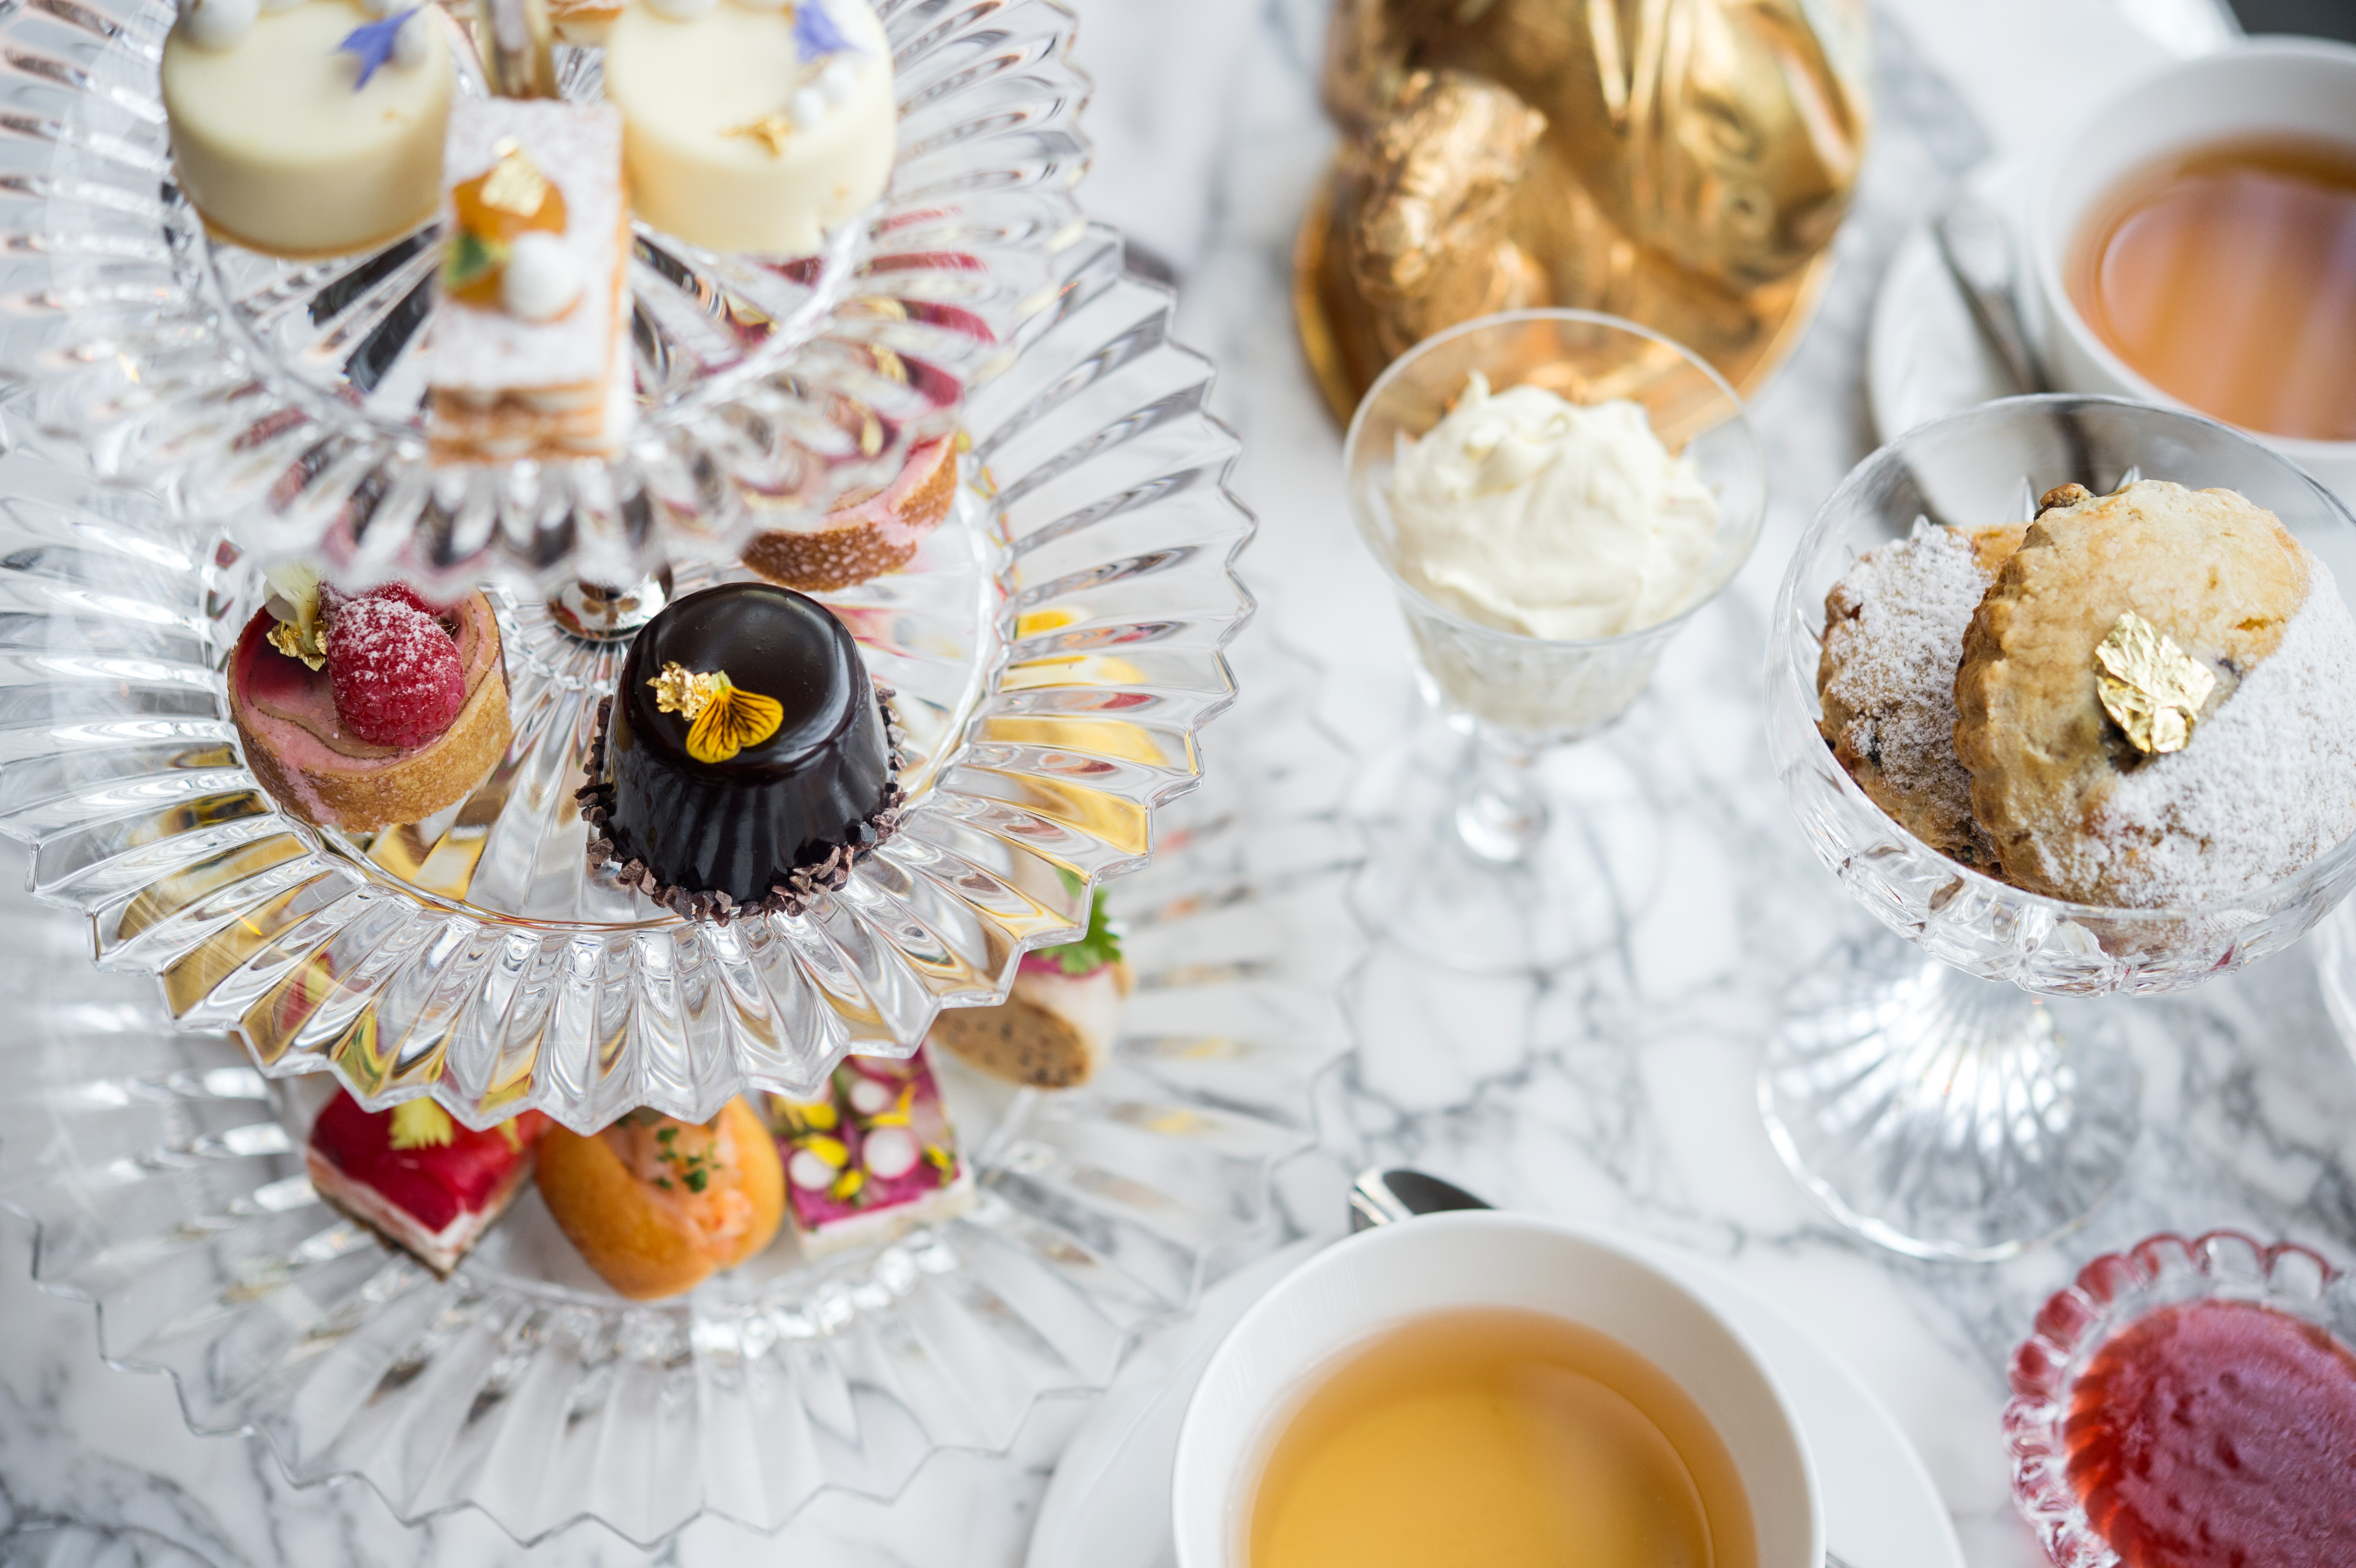 Afternoon Tea service at the Baccarat, a luxury hotel in Midtown Manhattan, New York.